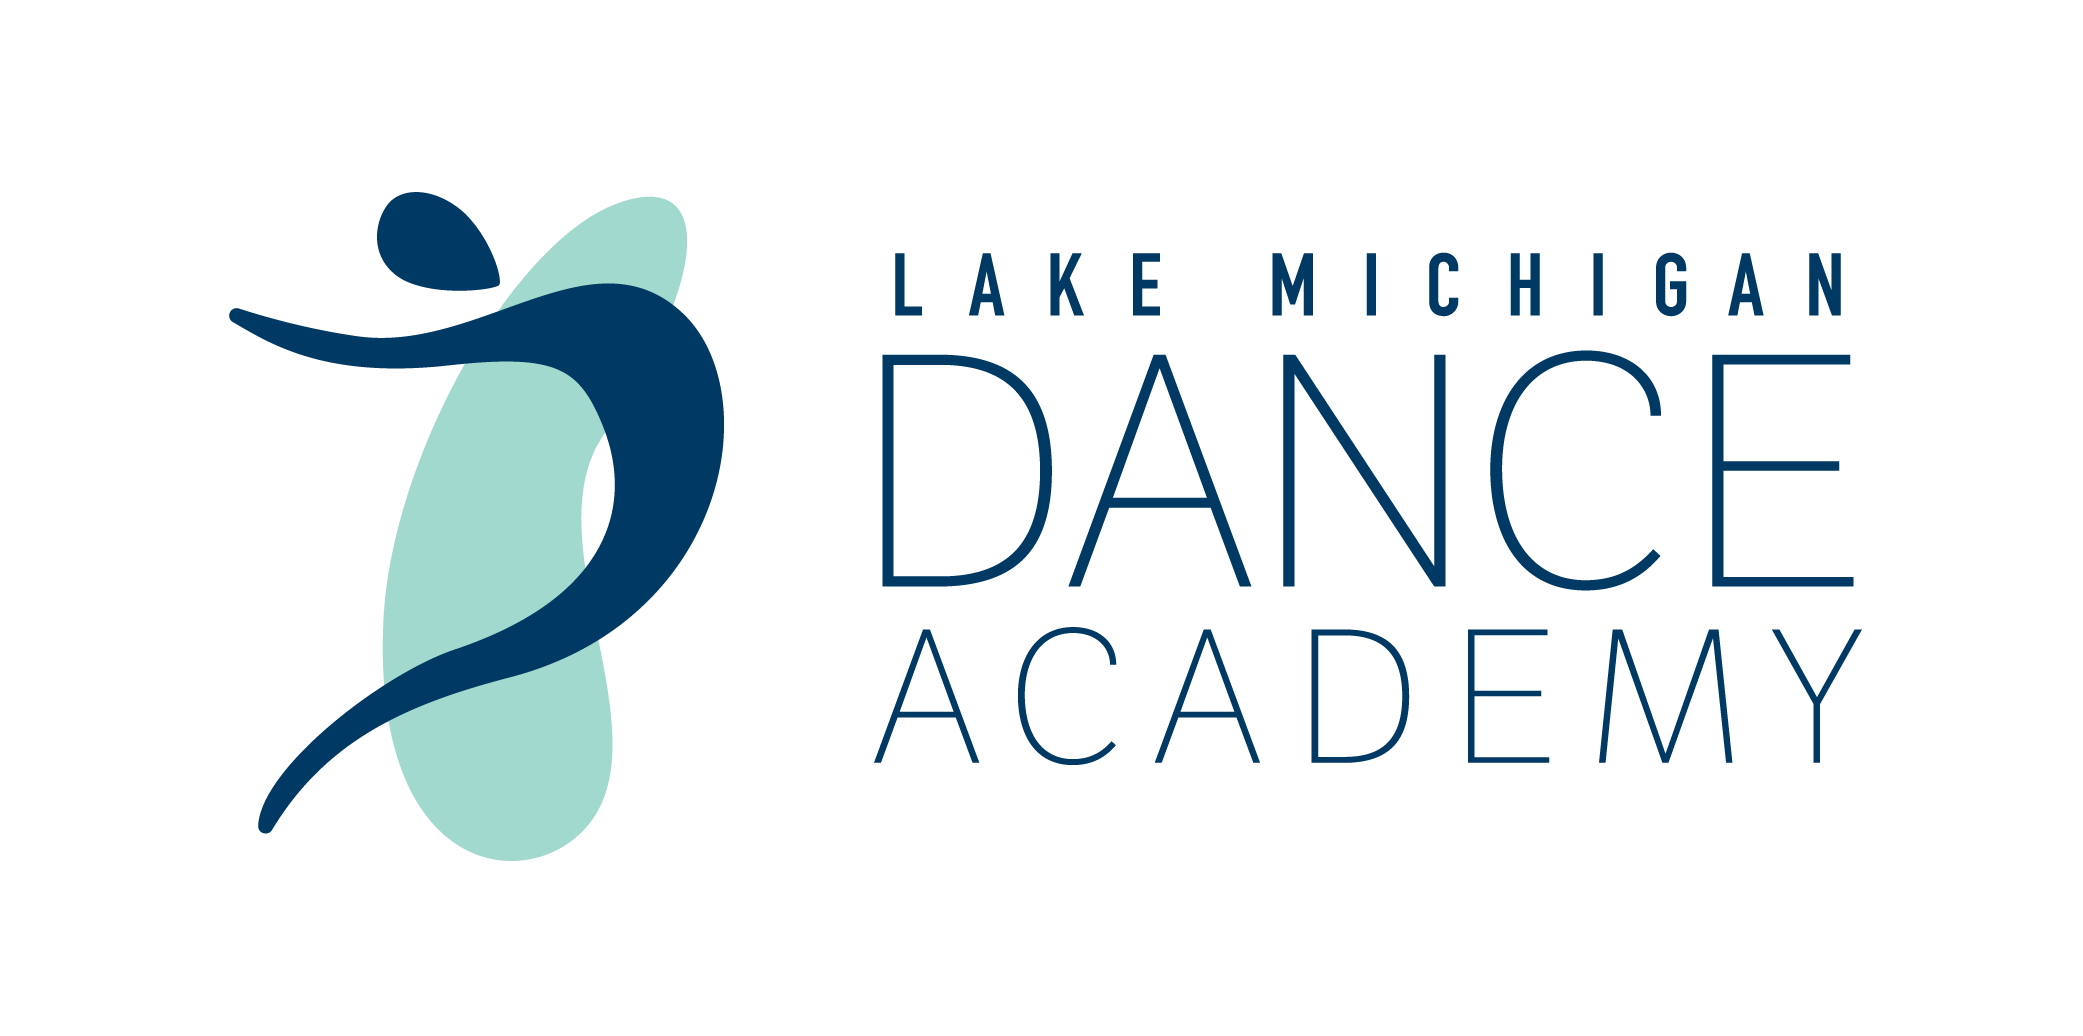 Lake michigan png. Dance academy sign up